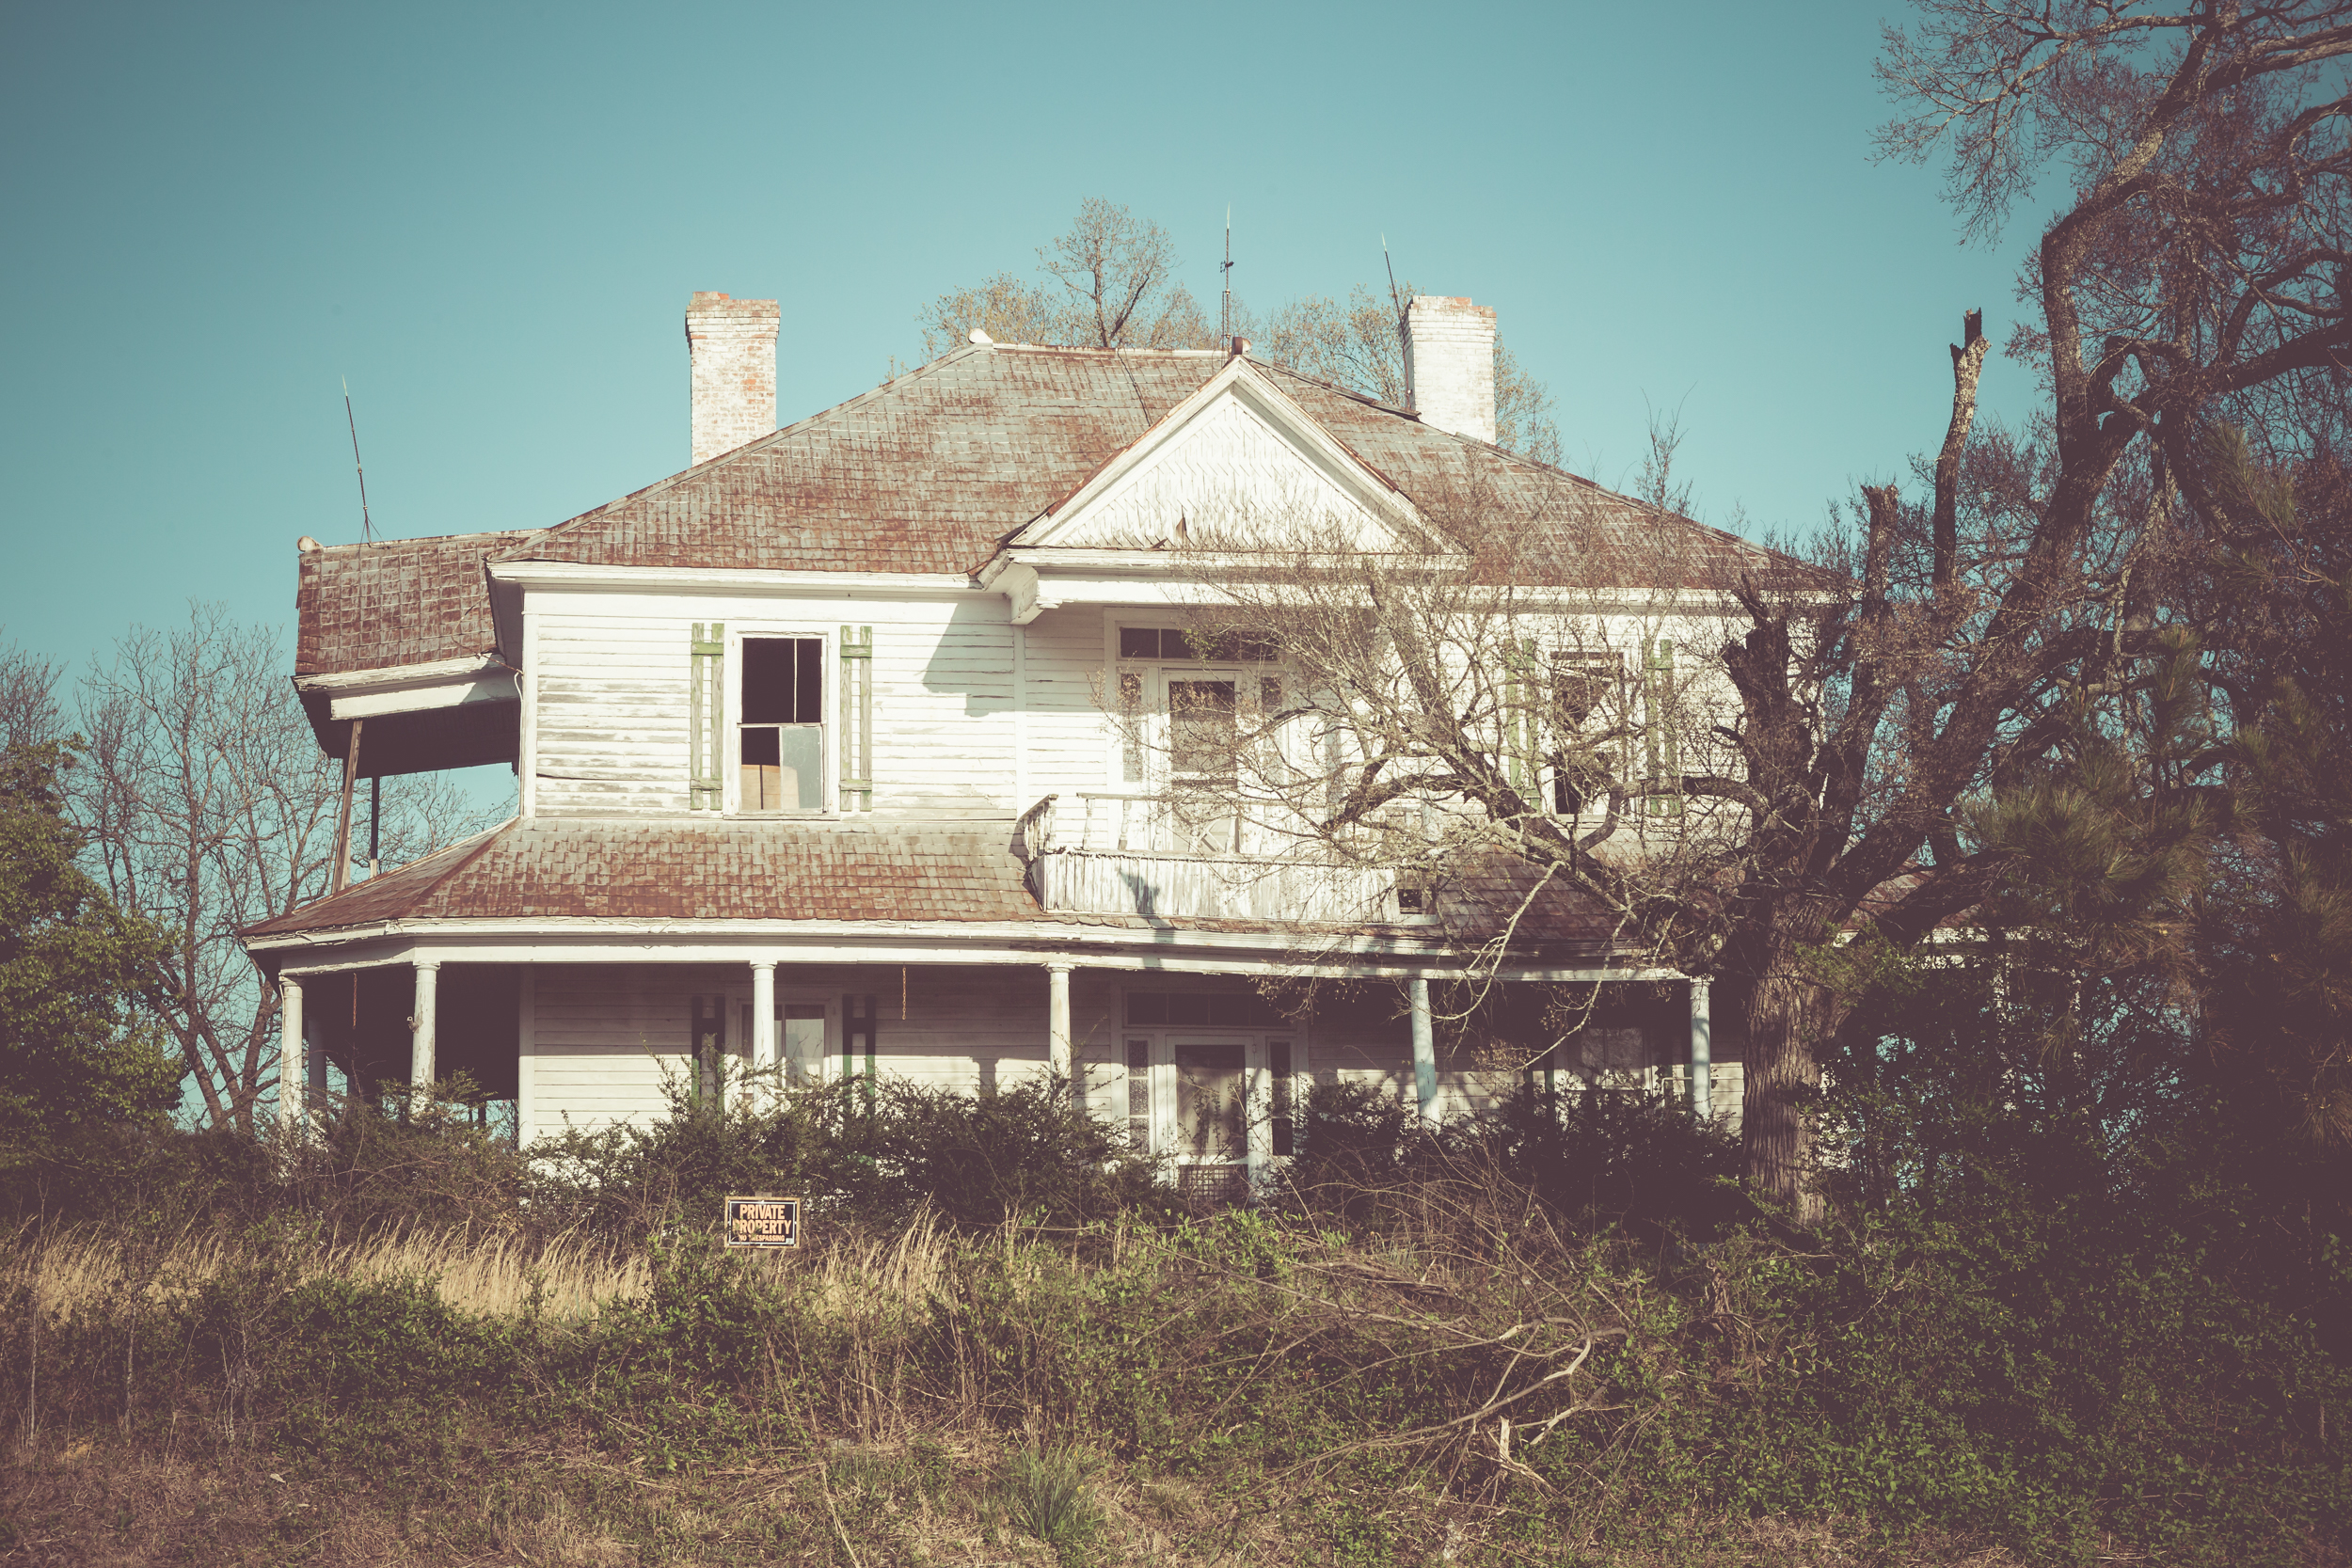 ©jennifer bailey 2015 abandoned house, south carolina